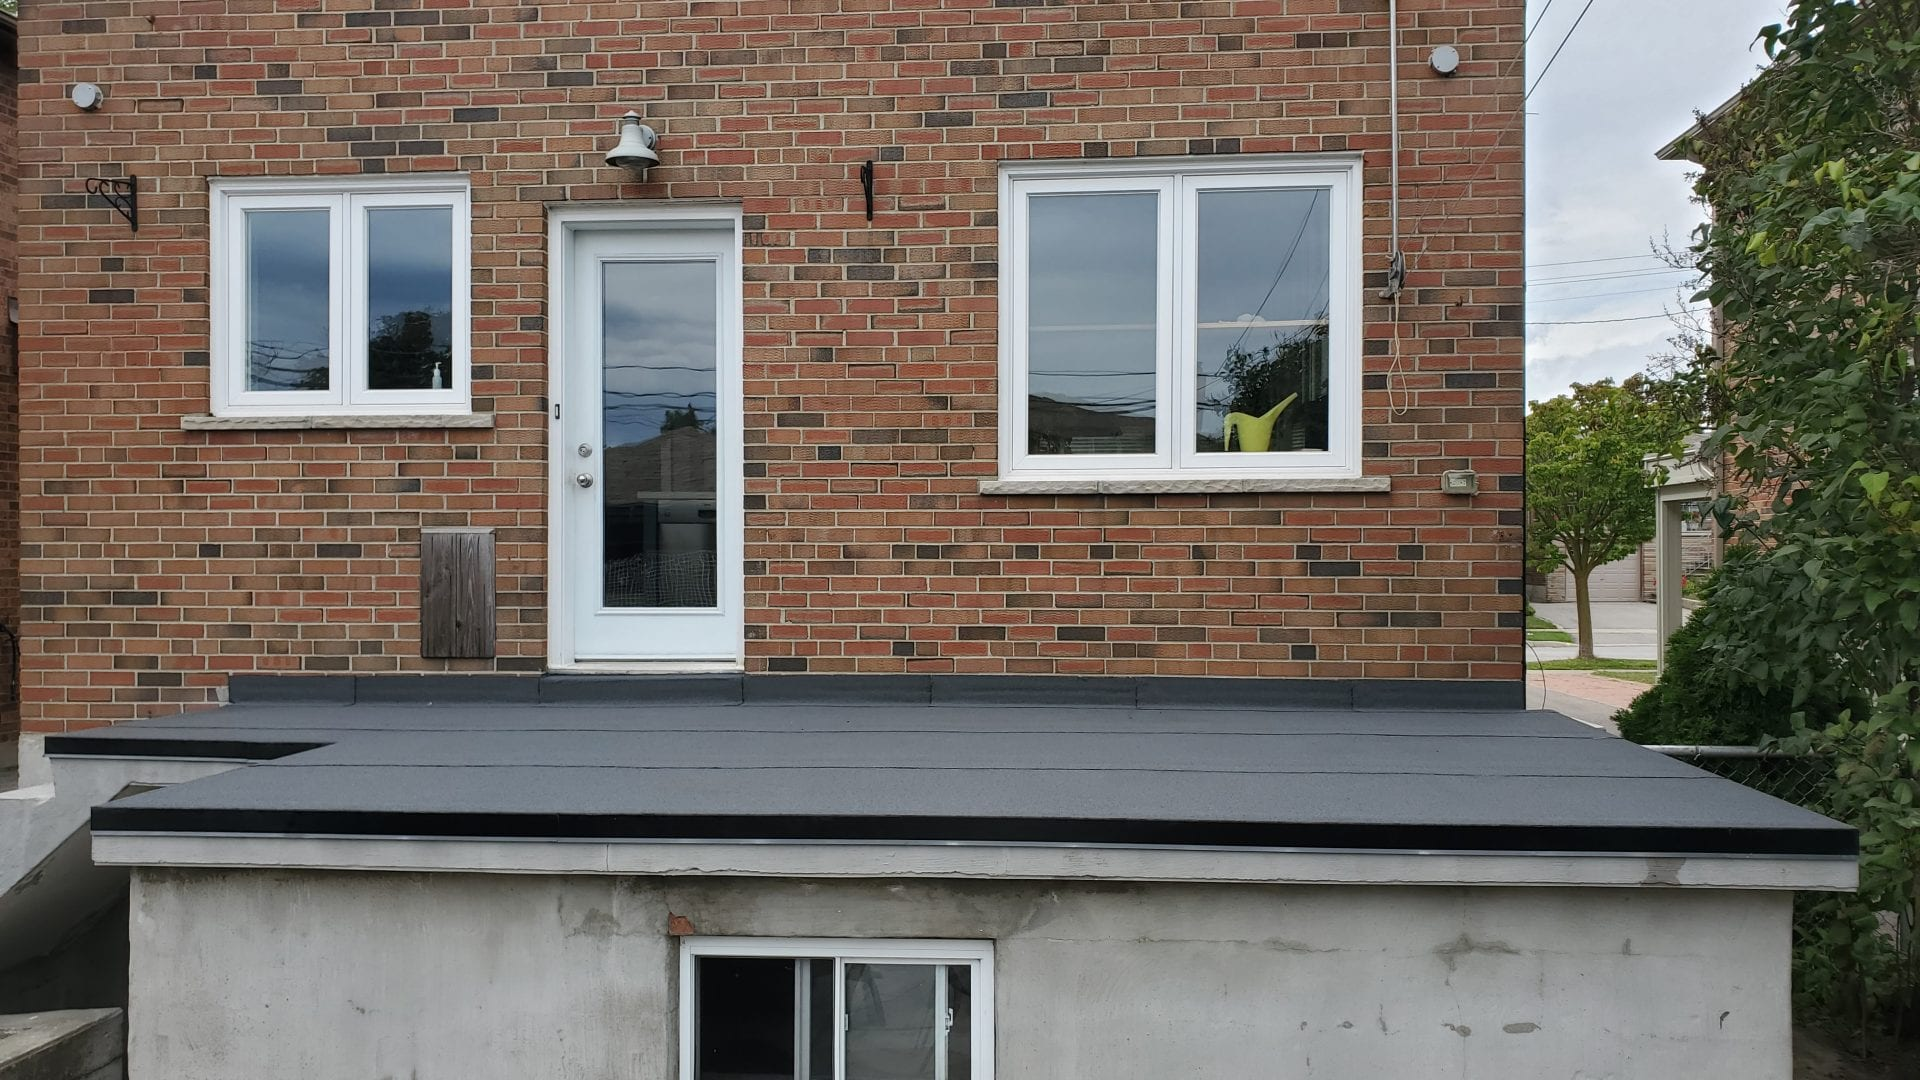 Flat roof life expectancy